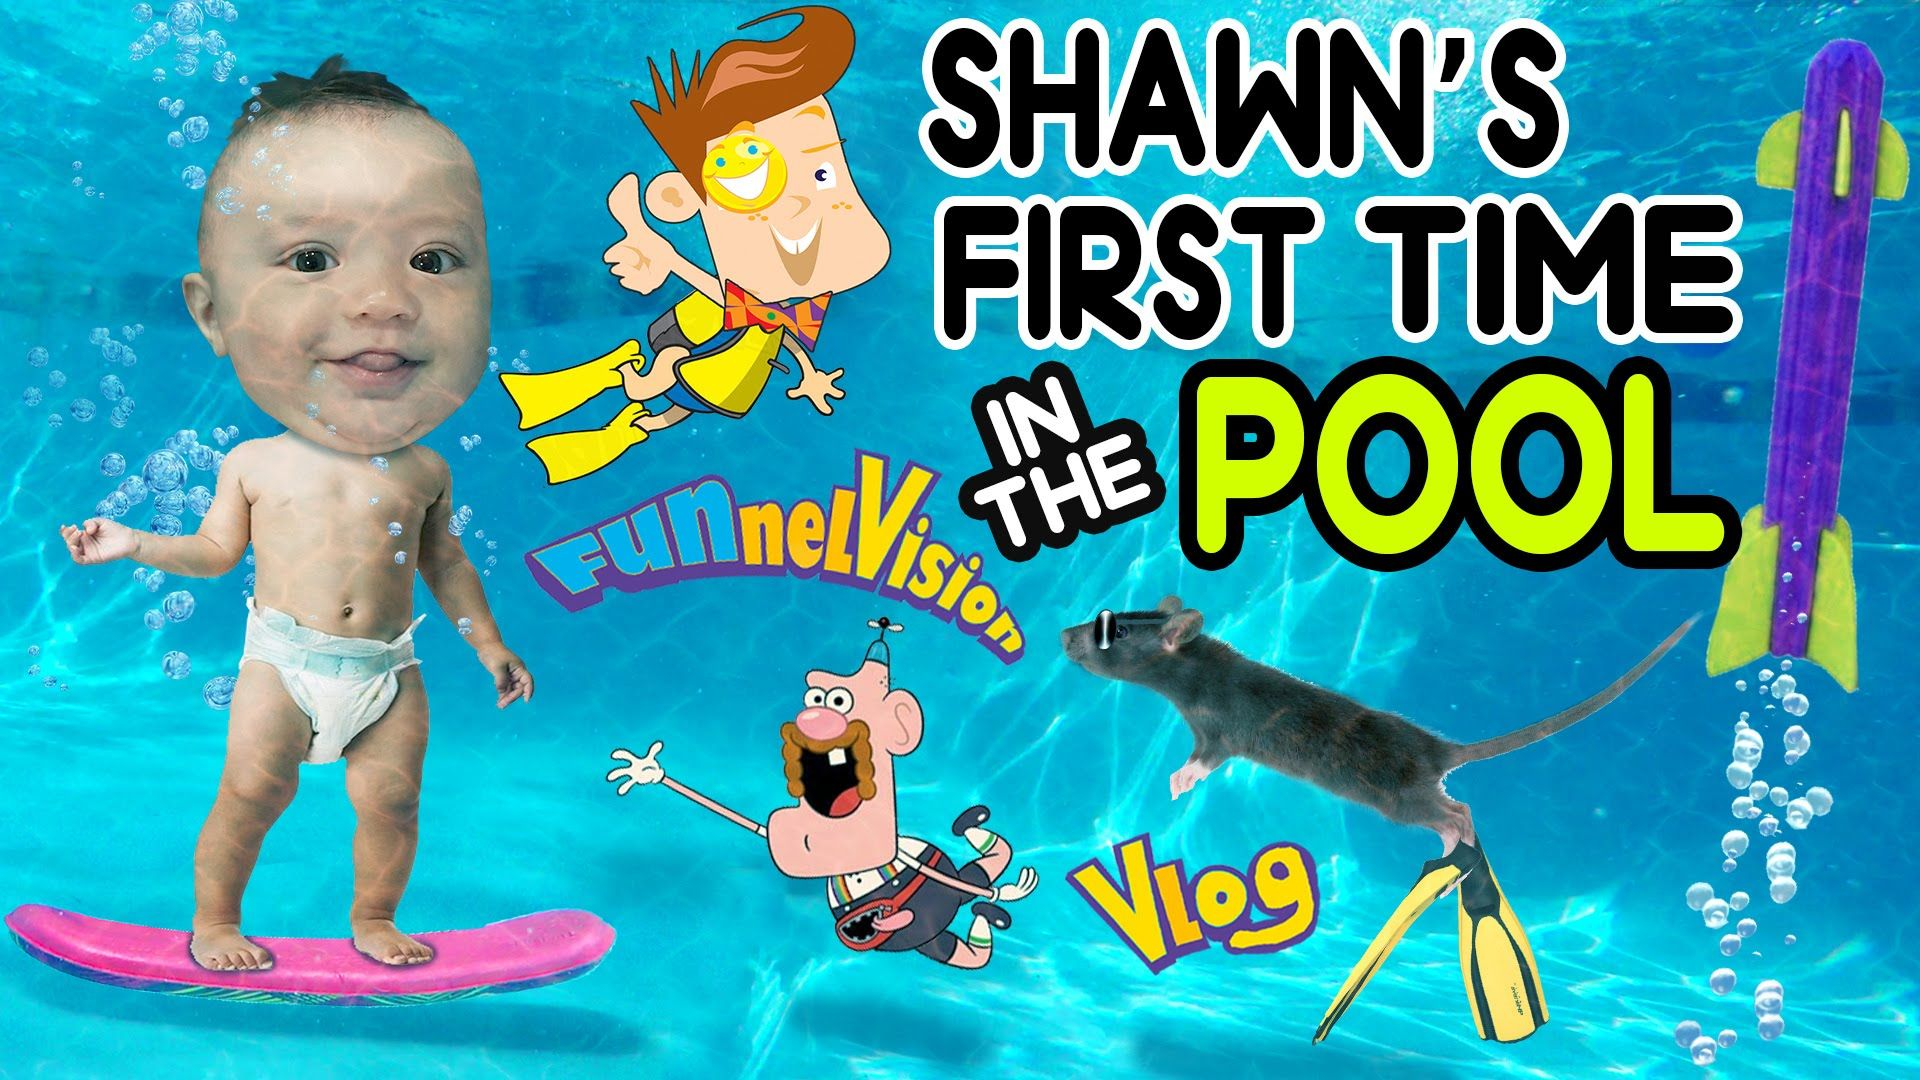 Baby Shawn S First Time Swimming In The Pool Underwater Skateboard Funnel Vision Vlog Pool Swimming Pools Underwater [ 1080 x 1920 Pixel ]